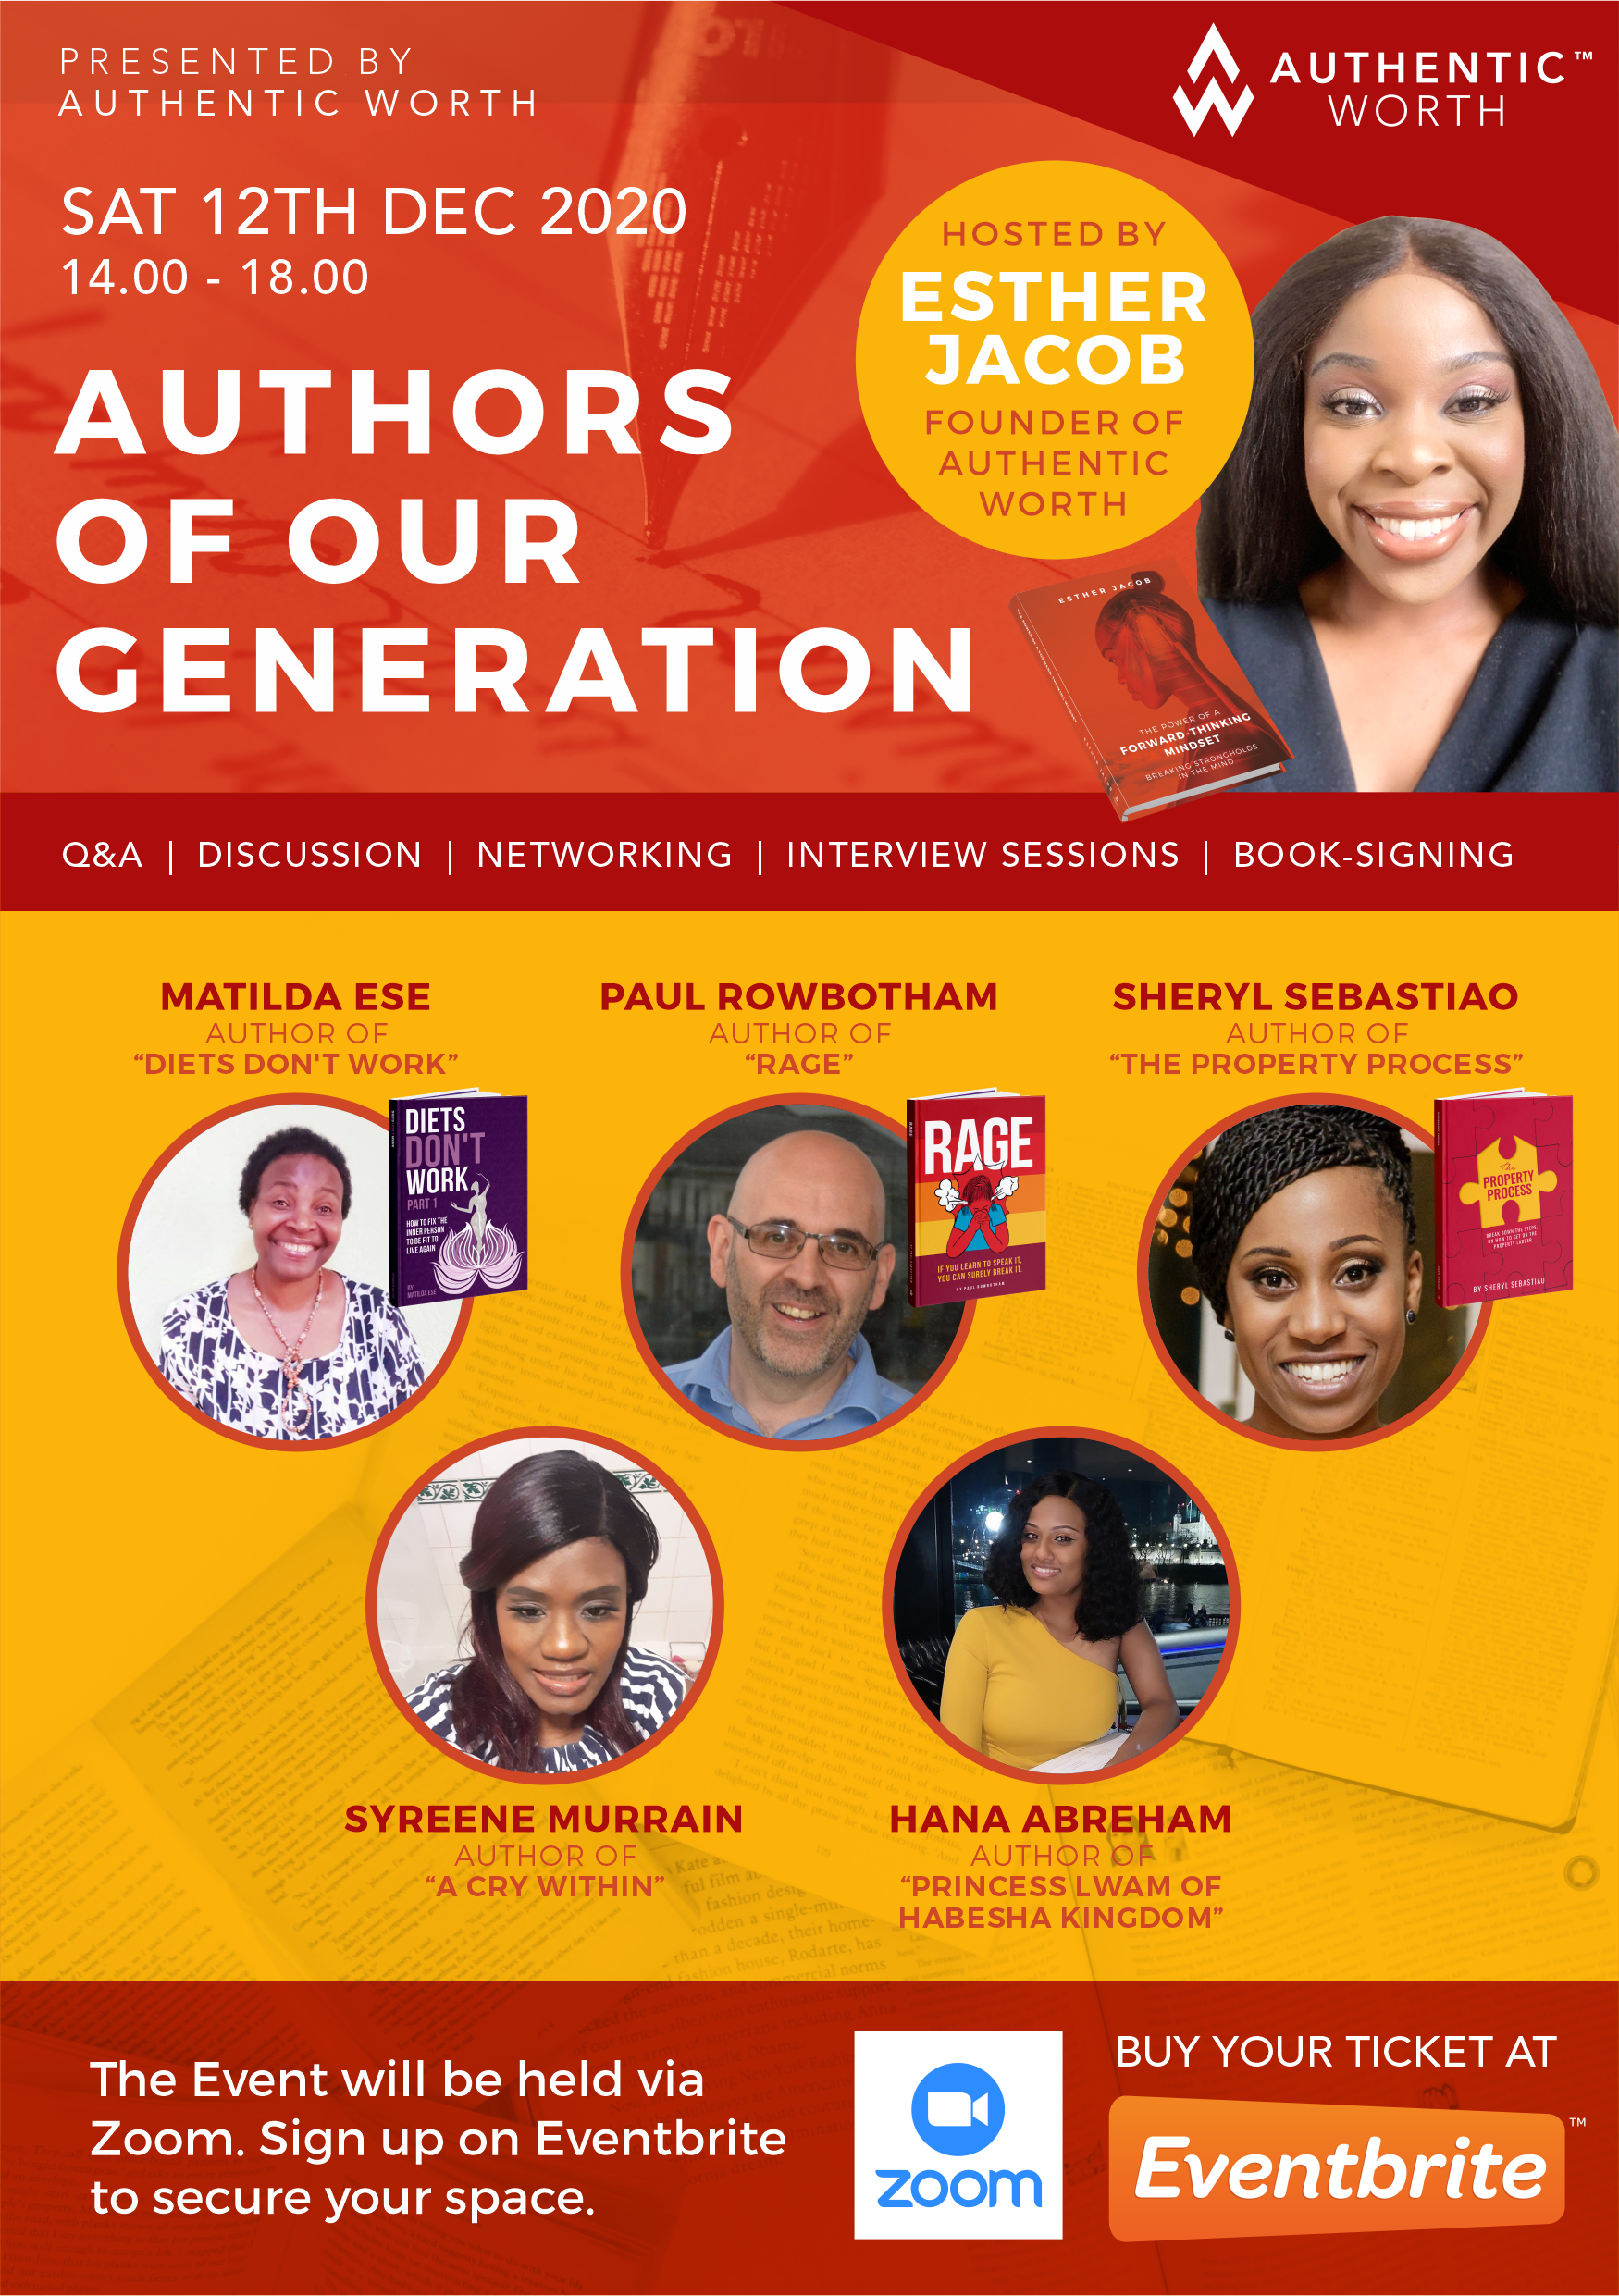 Authors of our generation Dec 2020 flyer